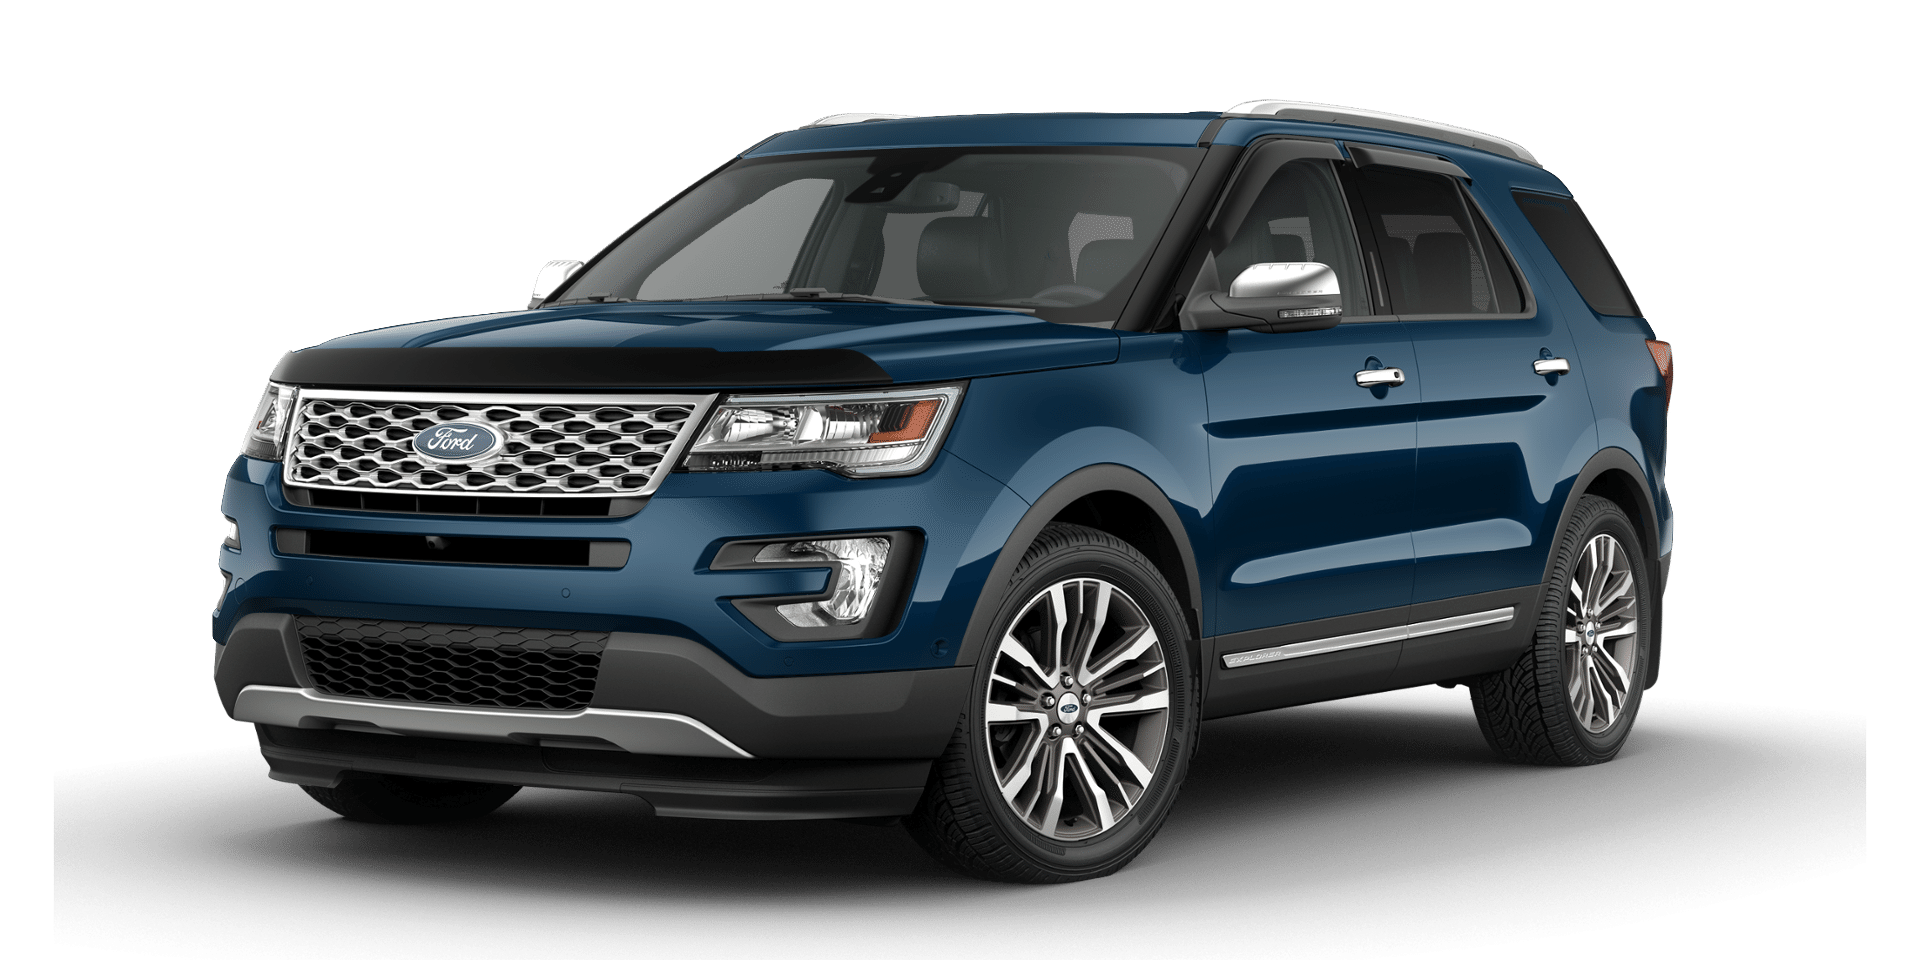 2016 ford explorer build price platinum explorer includes everything in blue jean color or ruby red